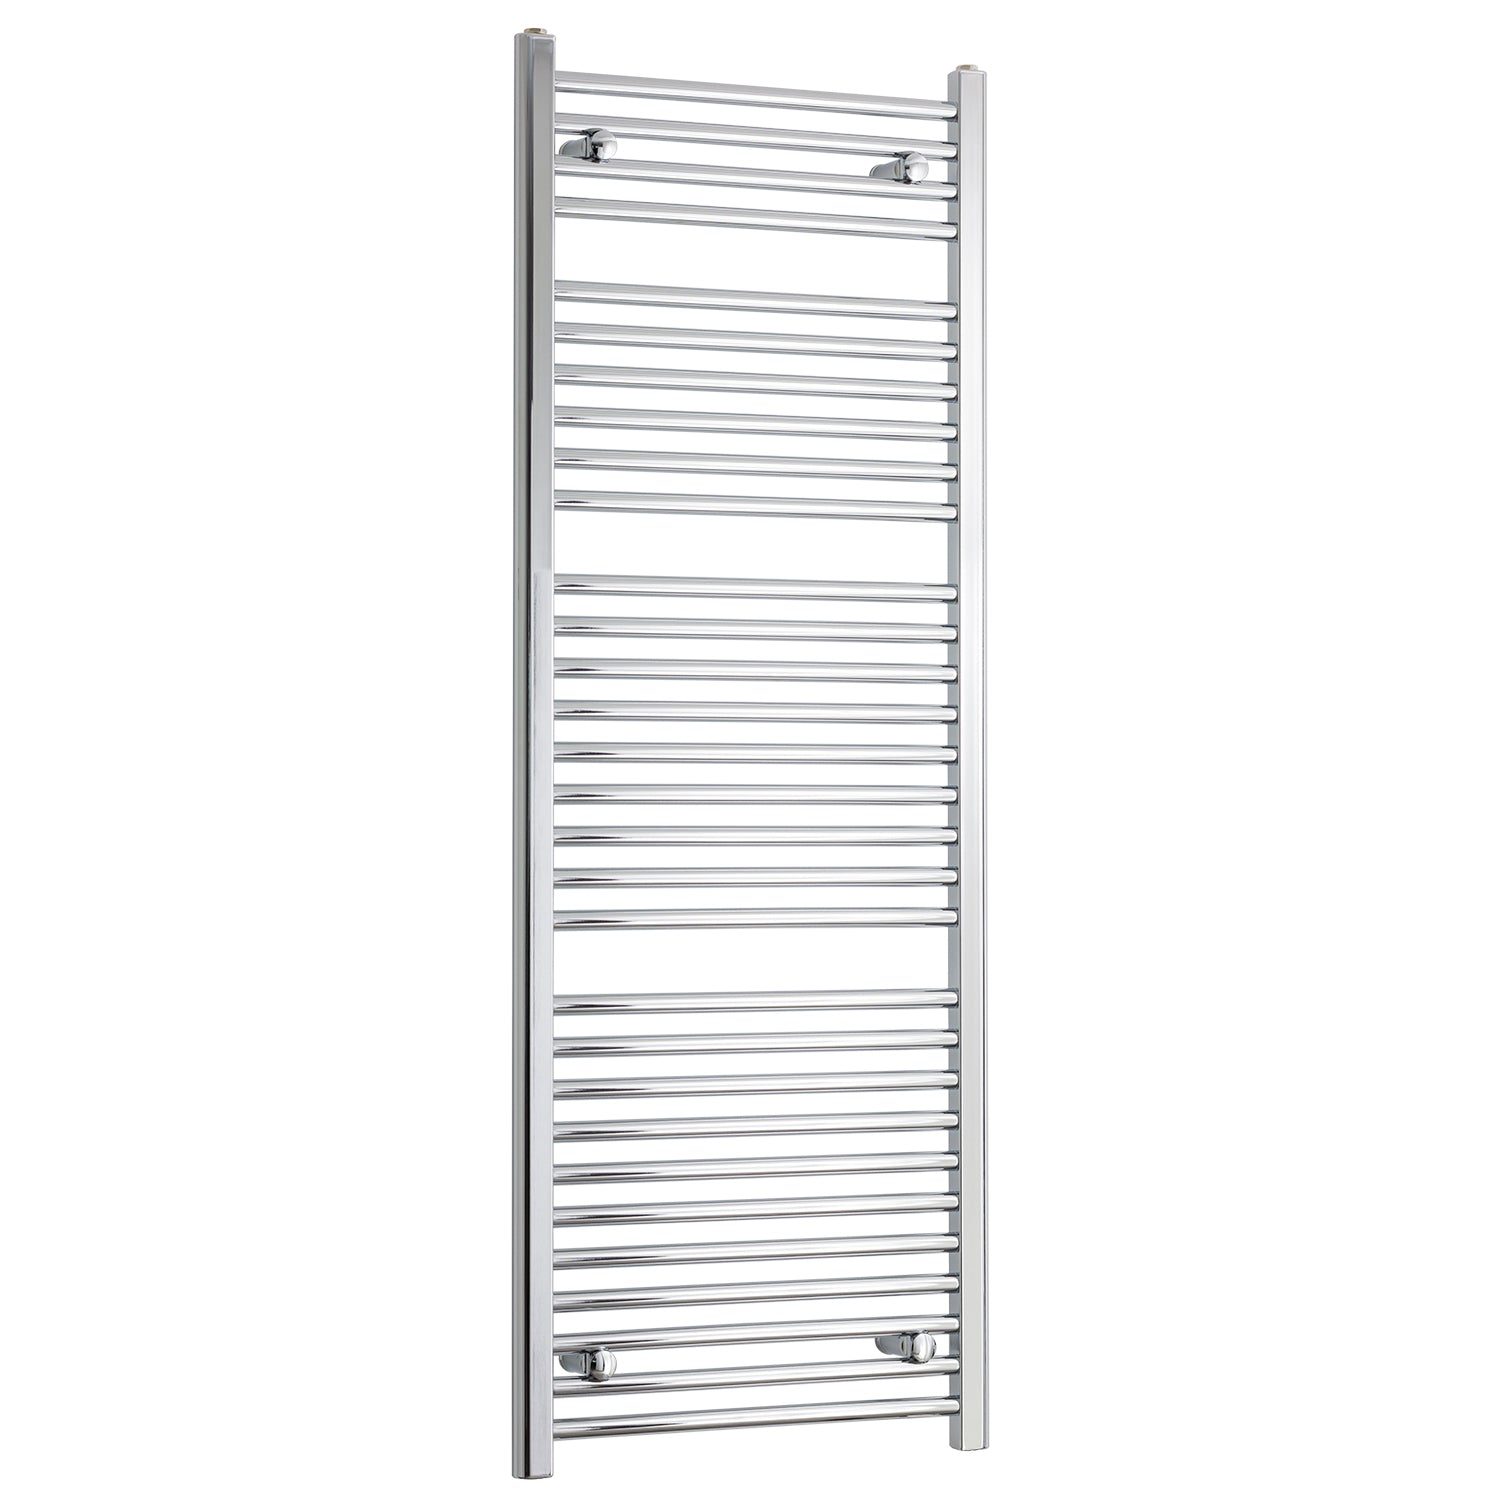 550mm Wide 1500mm High Chrome Towel Rail Radiator